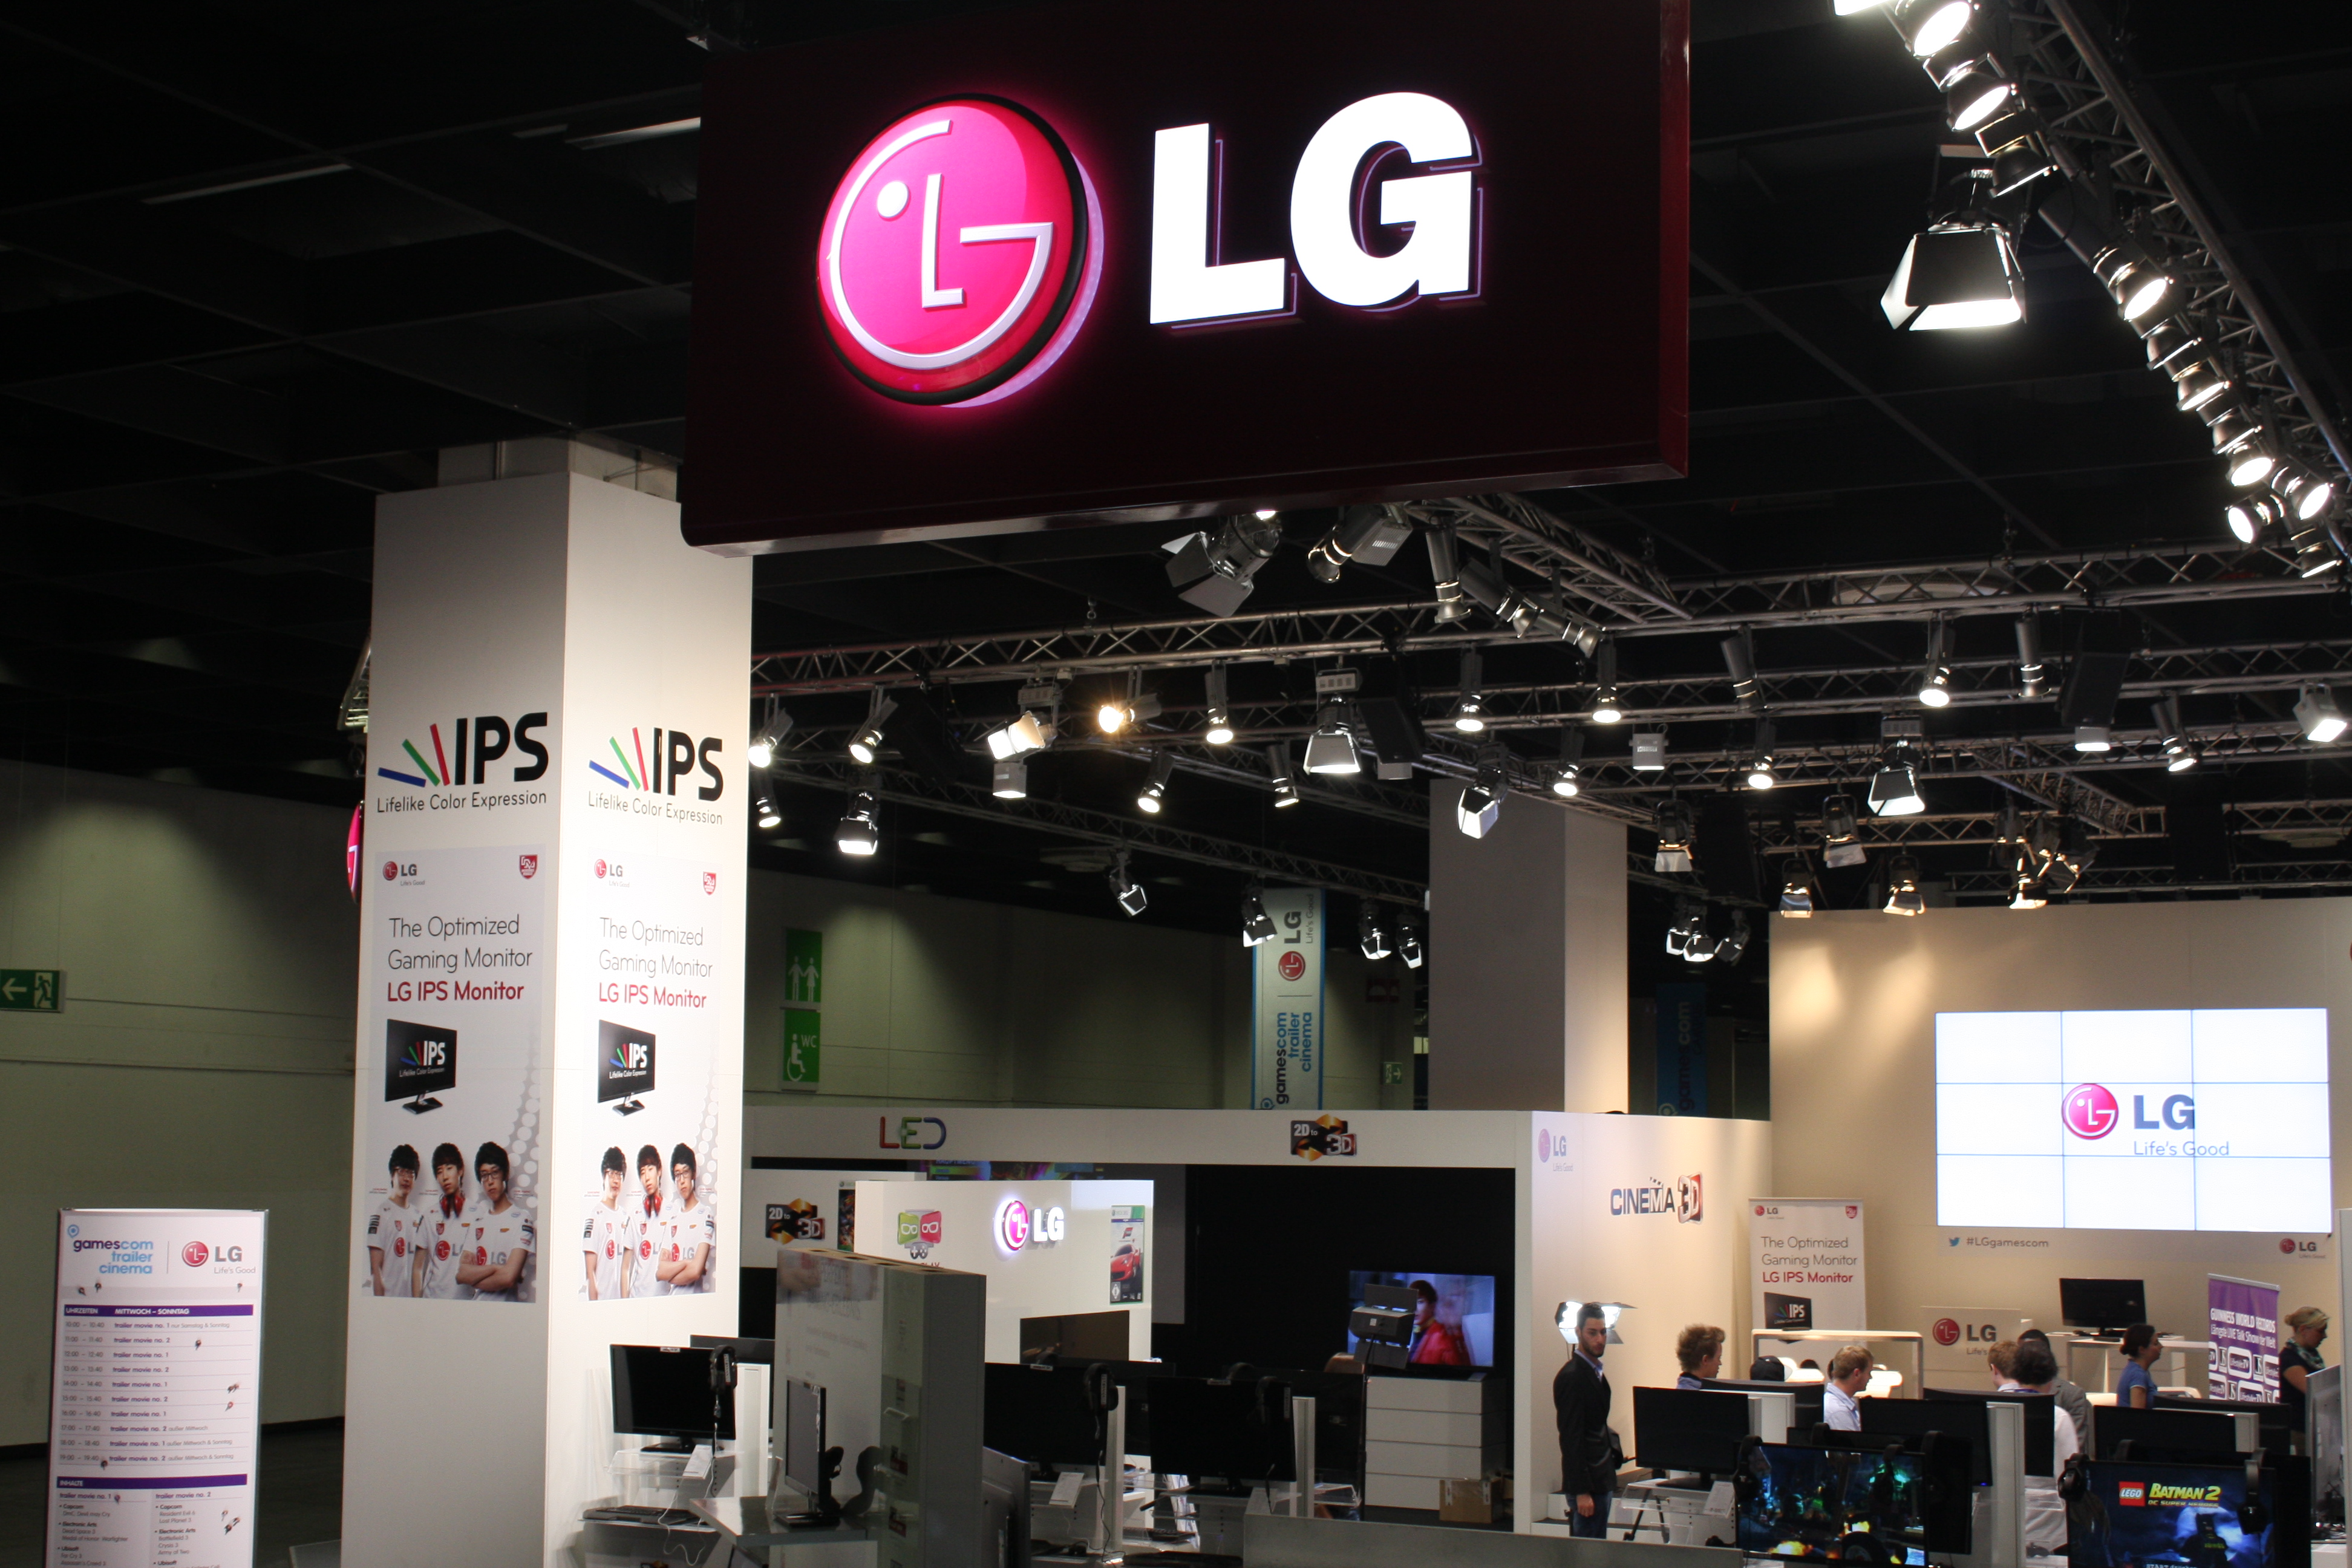 A high view of LG's booth and its many IPS monitors at GAMESCOM 2012